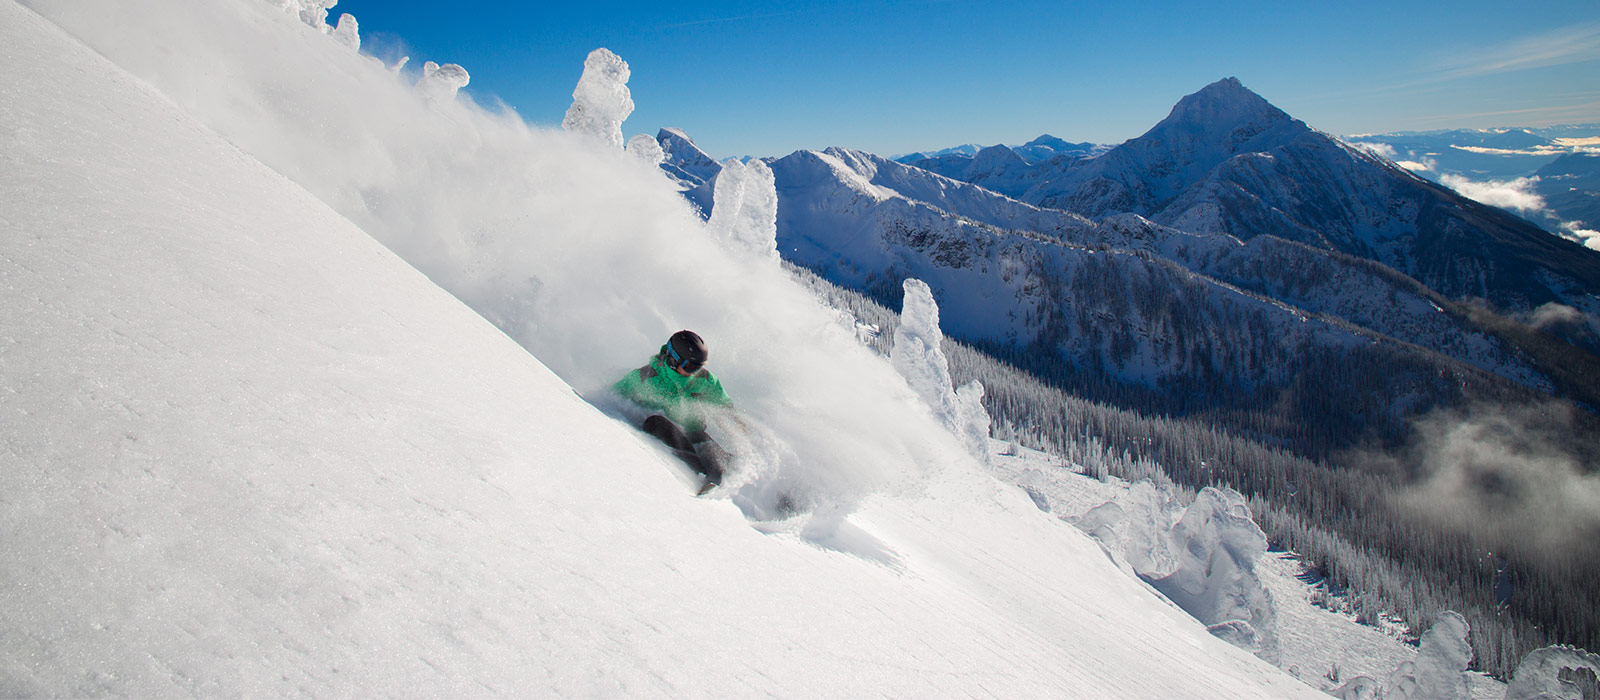 RMR Resort Skiing & Lift Tickets